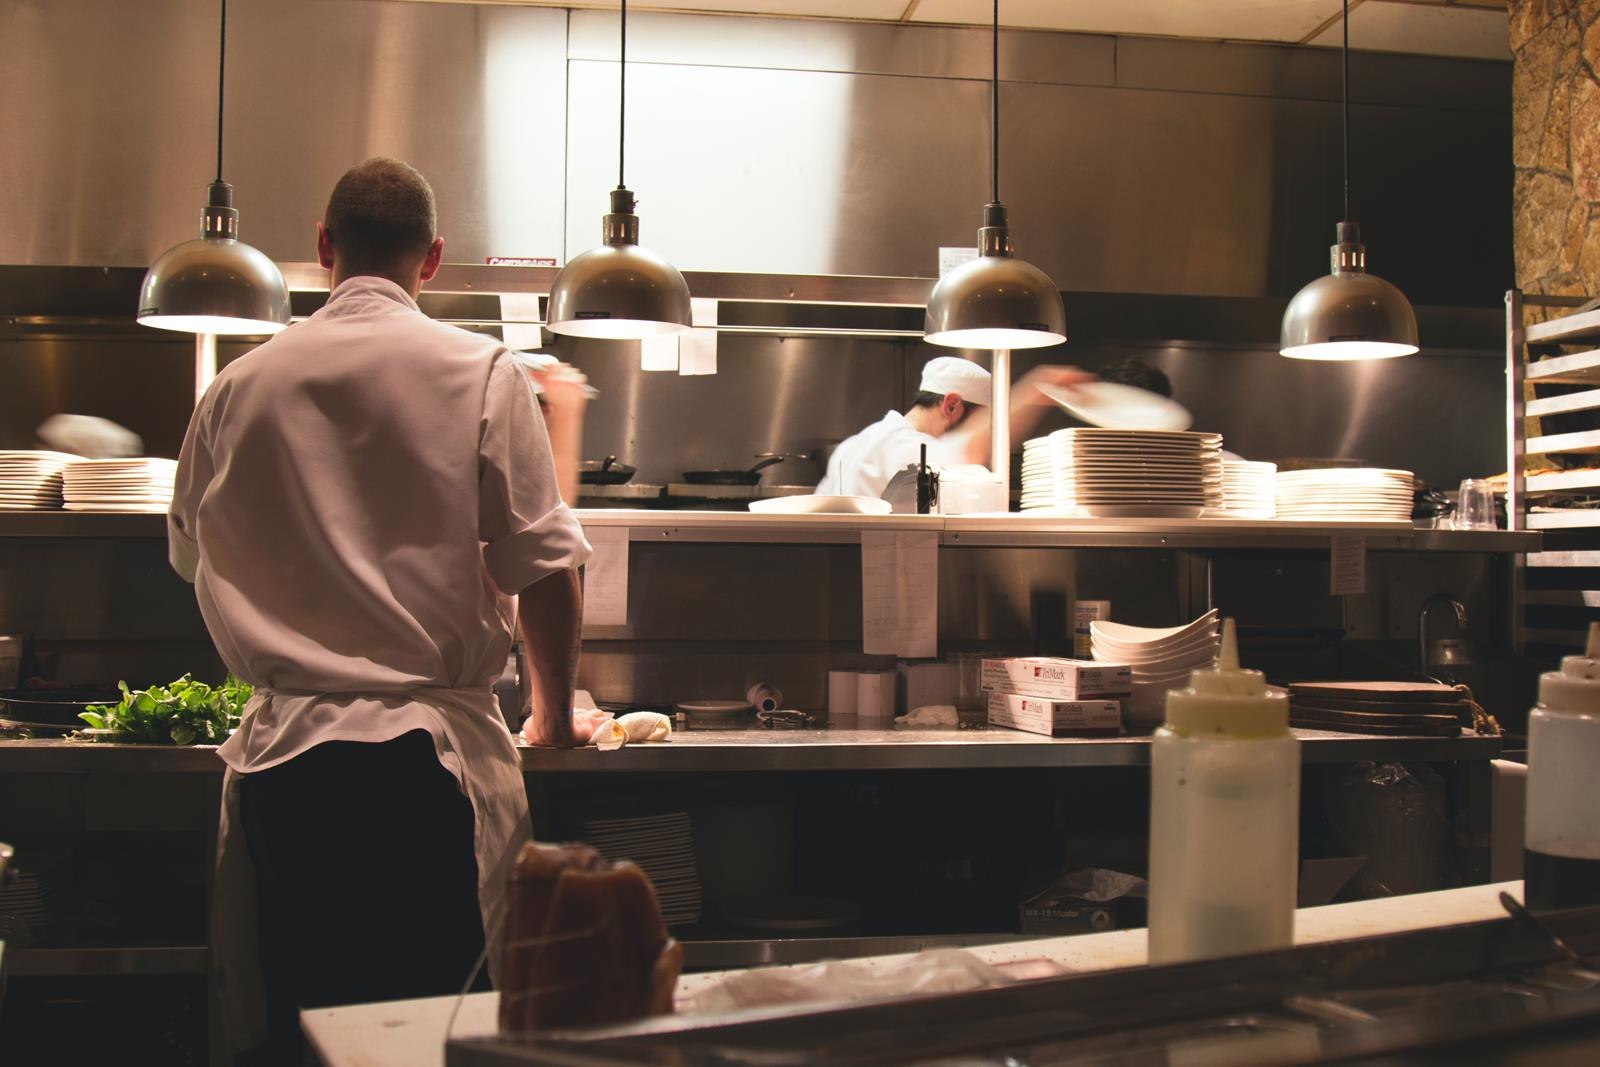 Fine Dining Restaurants: Get to Know What is on Offer